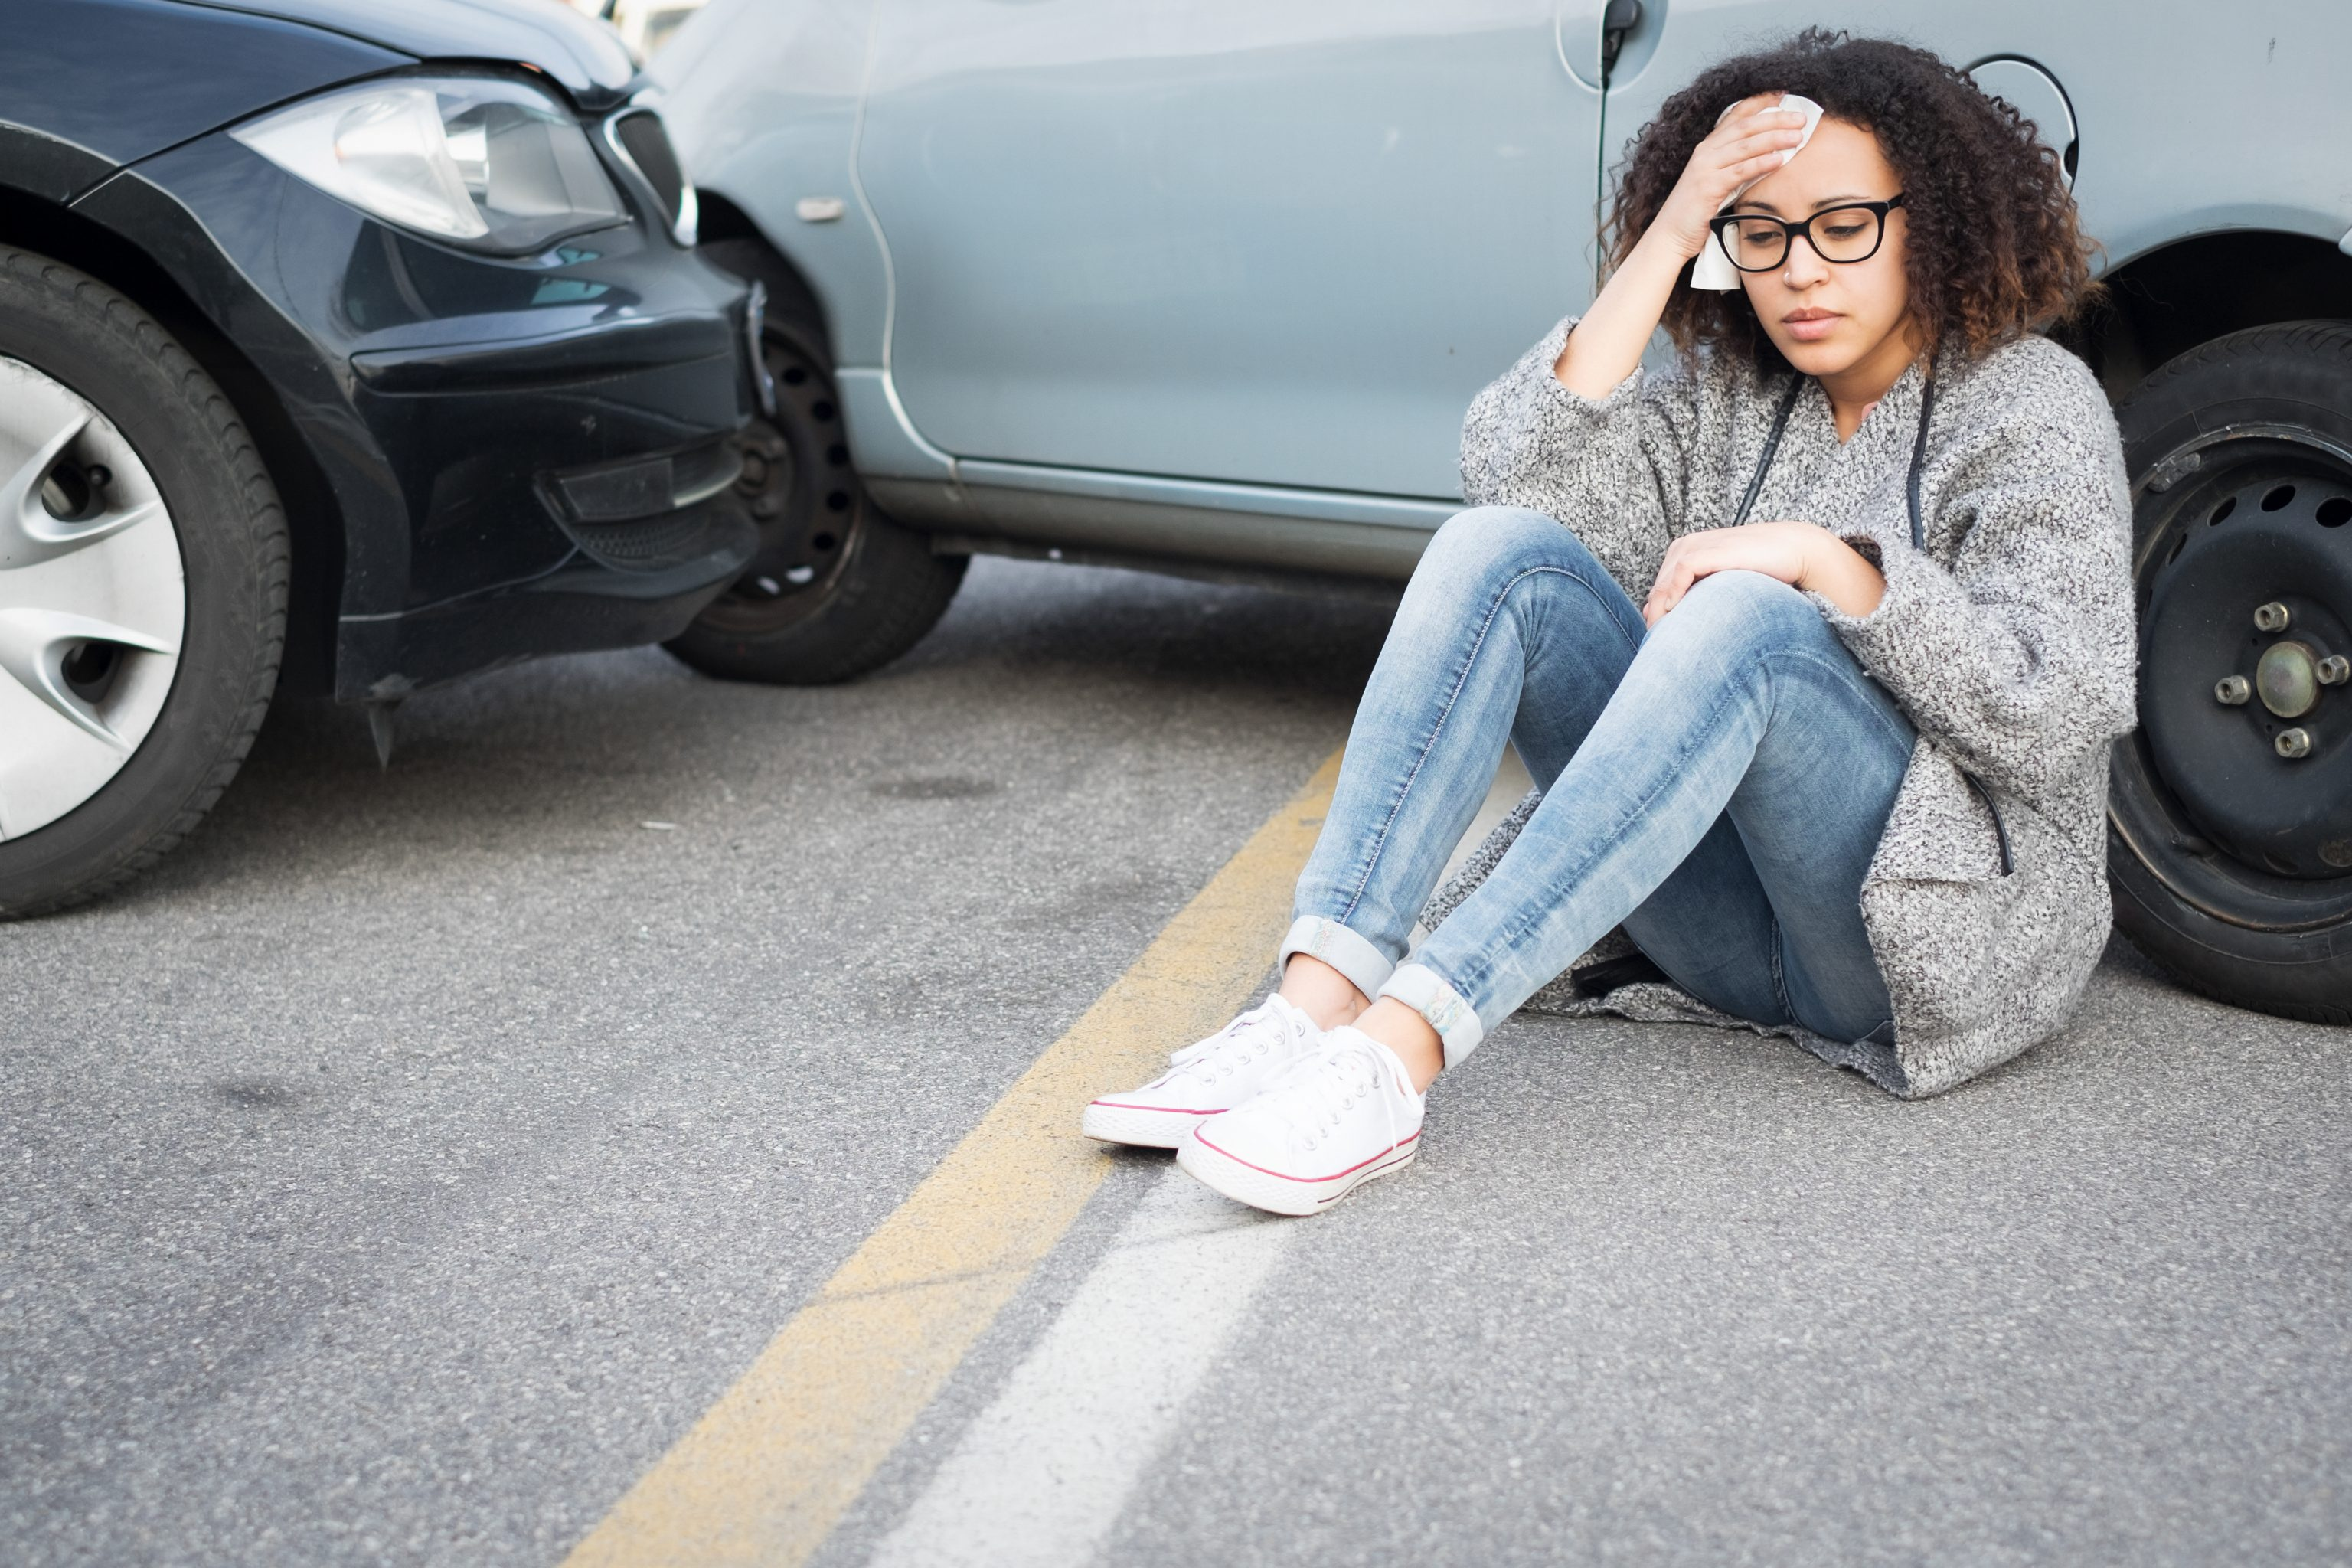 Injured In Accident What Are My Treatment Options For Car Accident Injuries